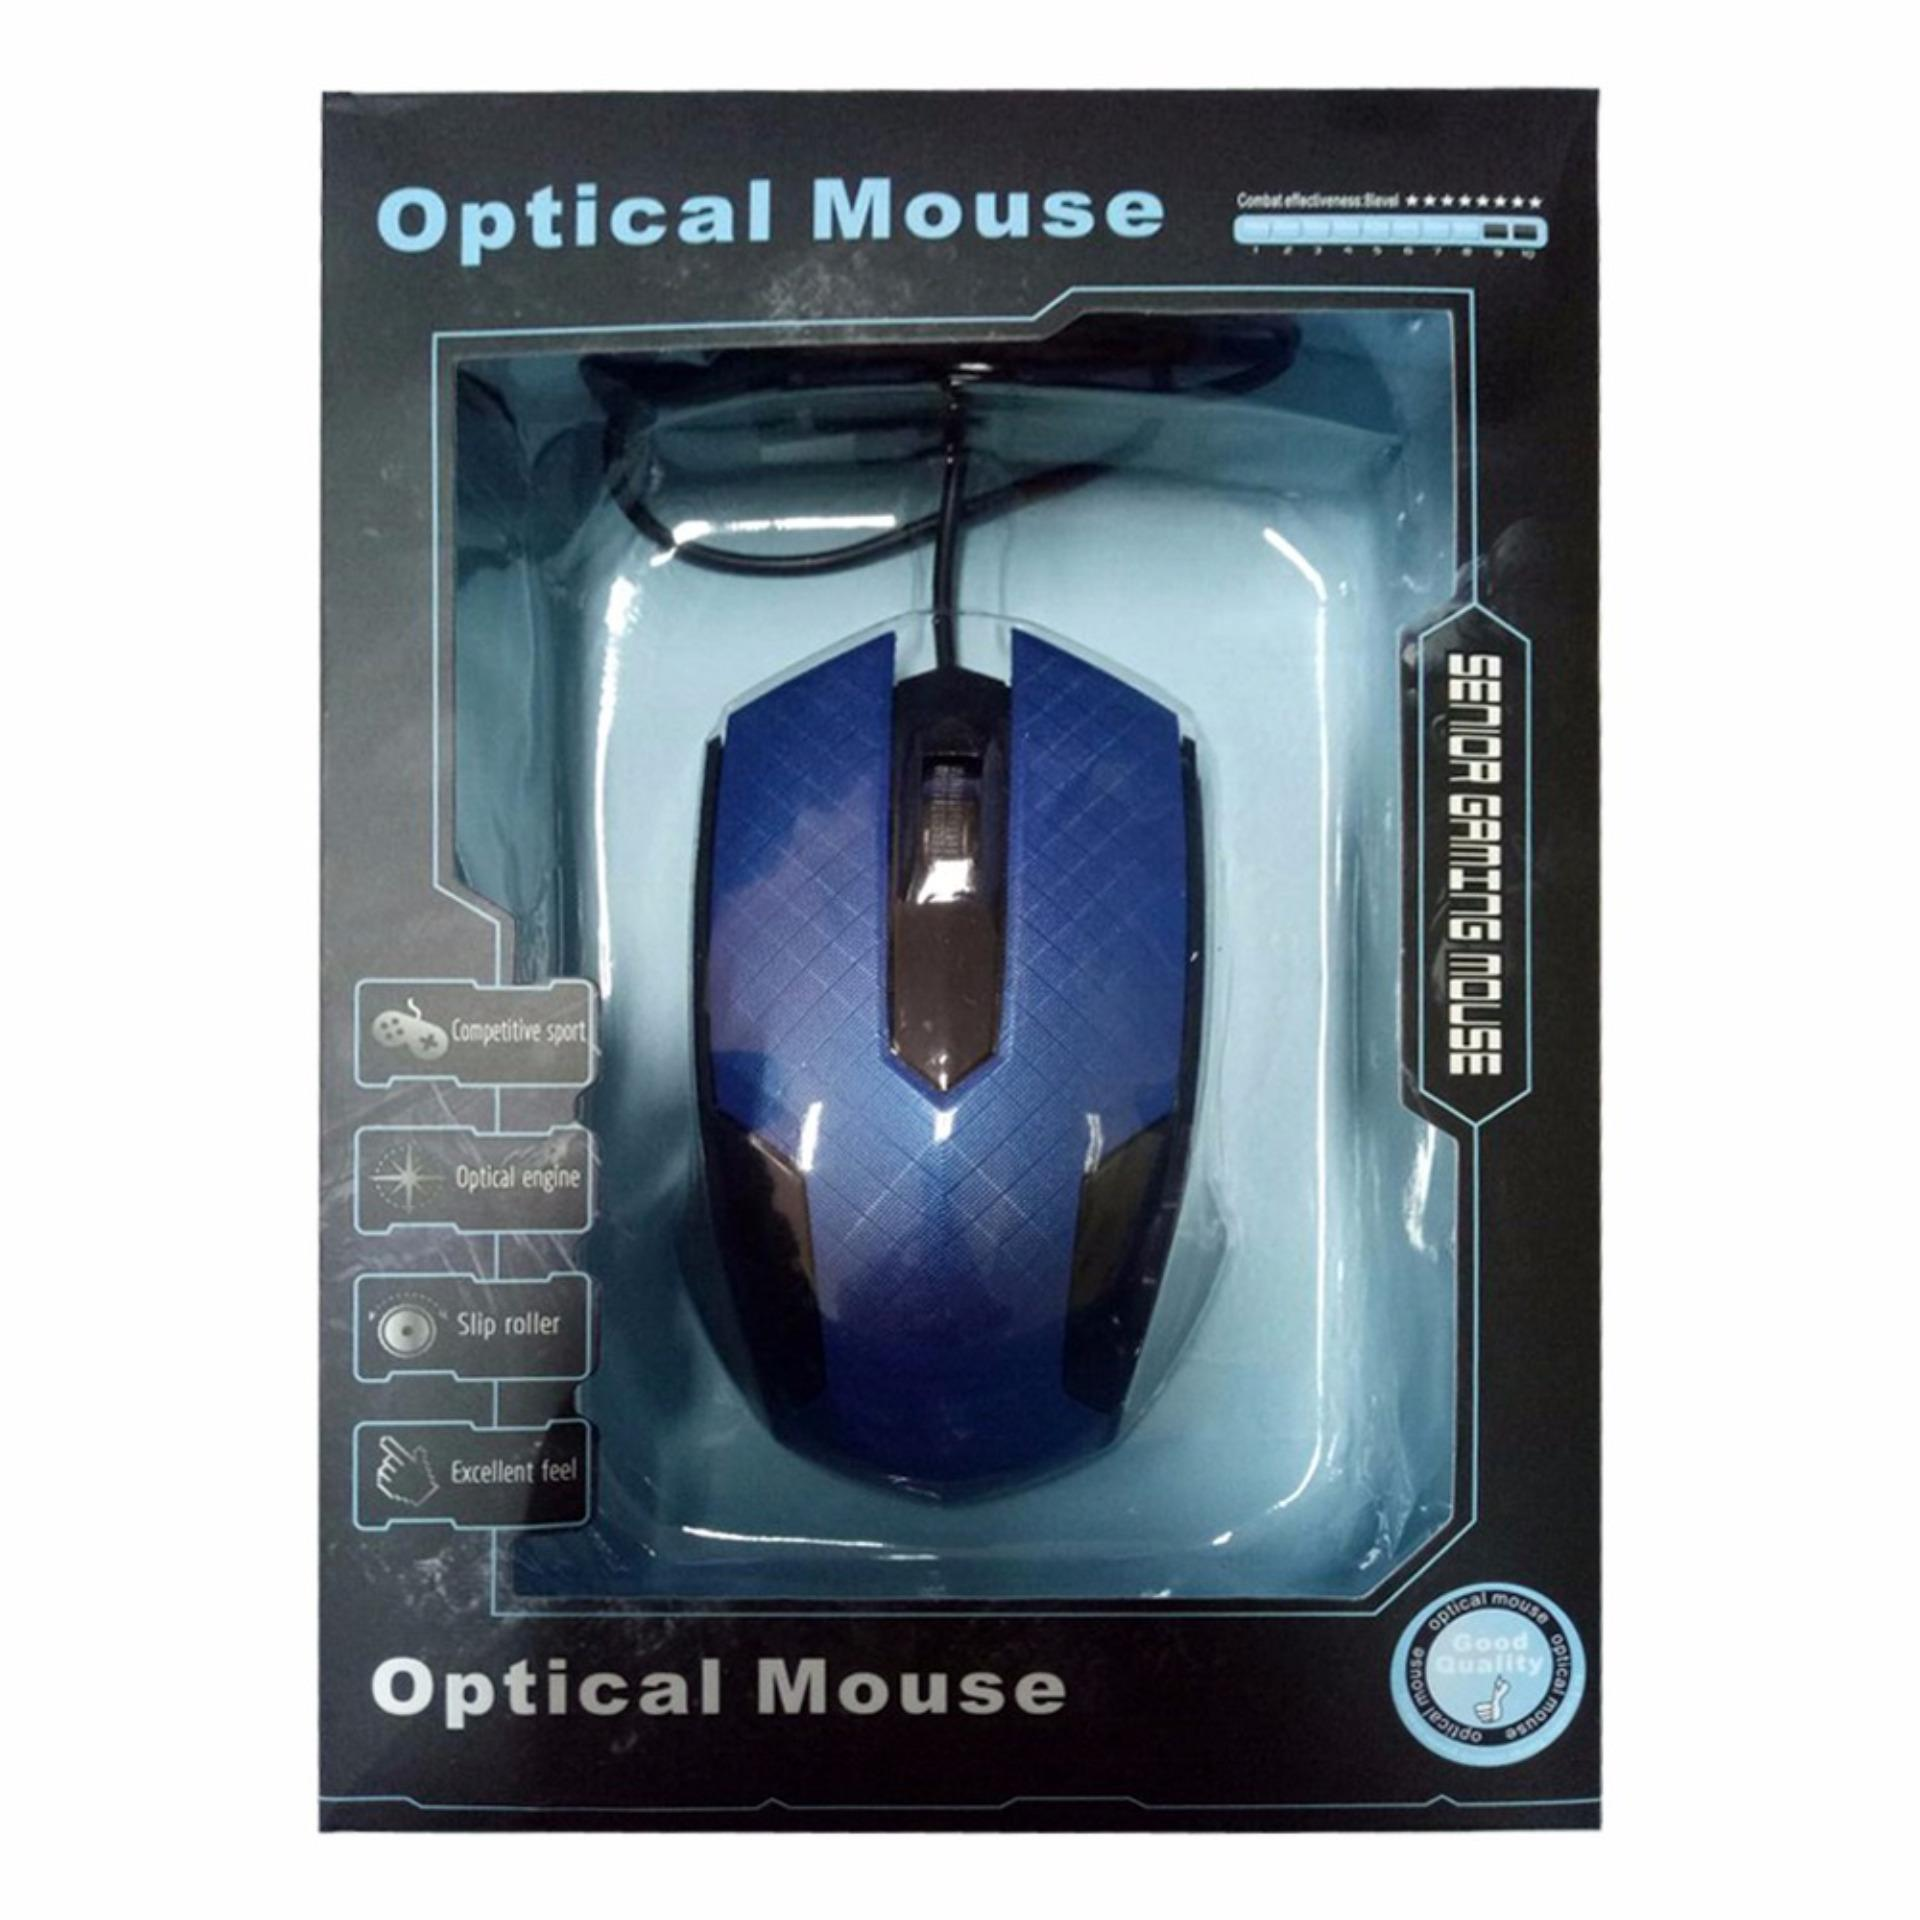 Unique Mouse Wireless M101 Nirkabel Untuk Komputer Dan Laptop Micropack Blutech 799 Kabel 8029 Model Gaming Home Office Pc